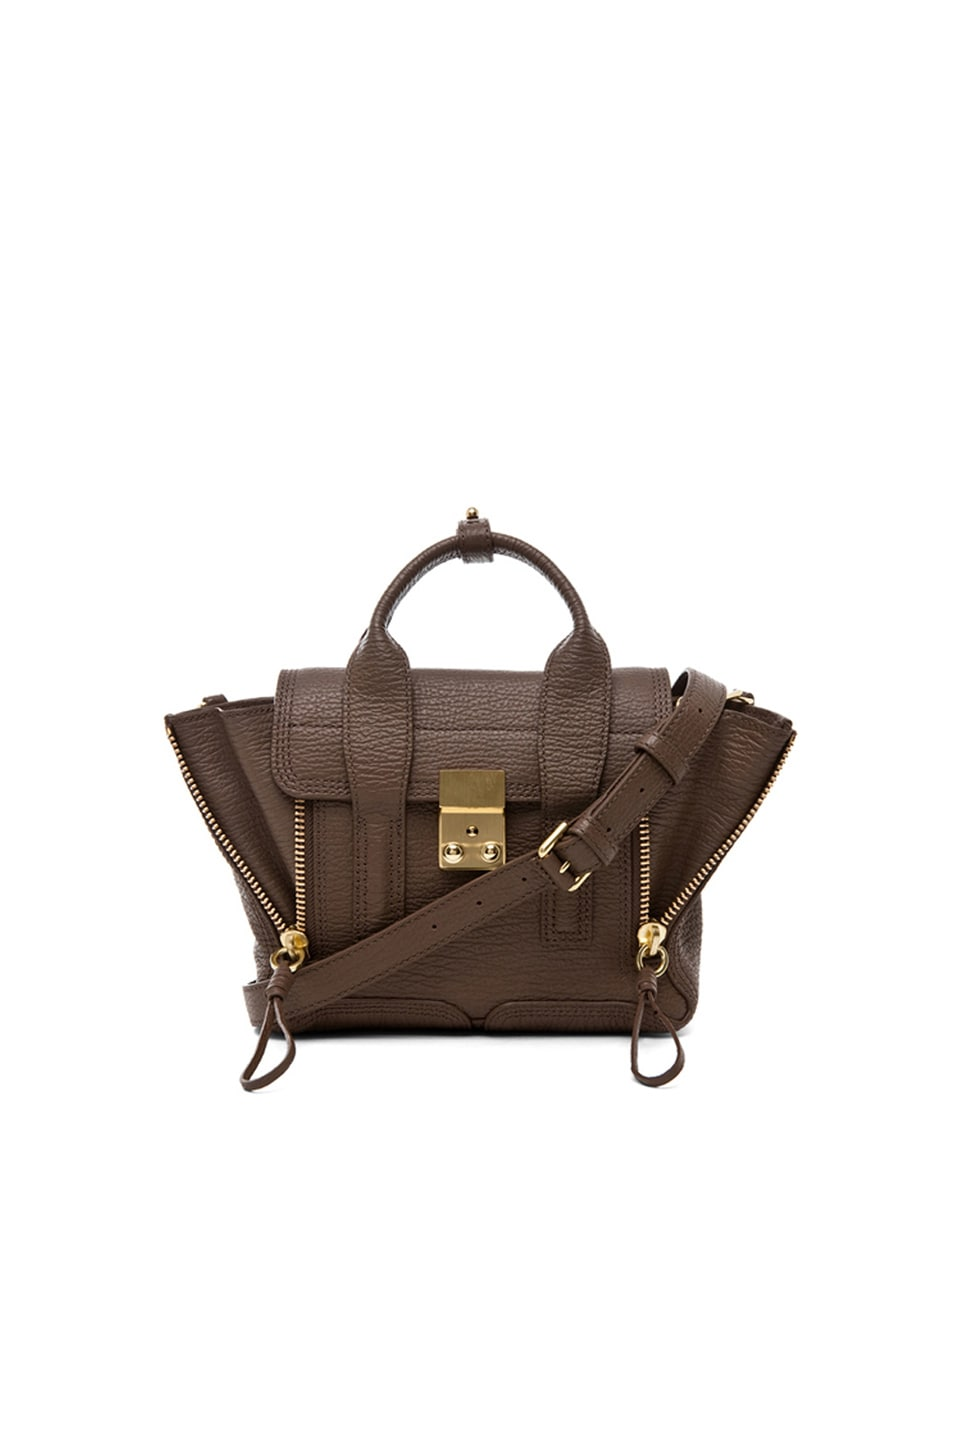 Image 1 of 3.1 phillip lim Mini Pashli Satchel in Taupe